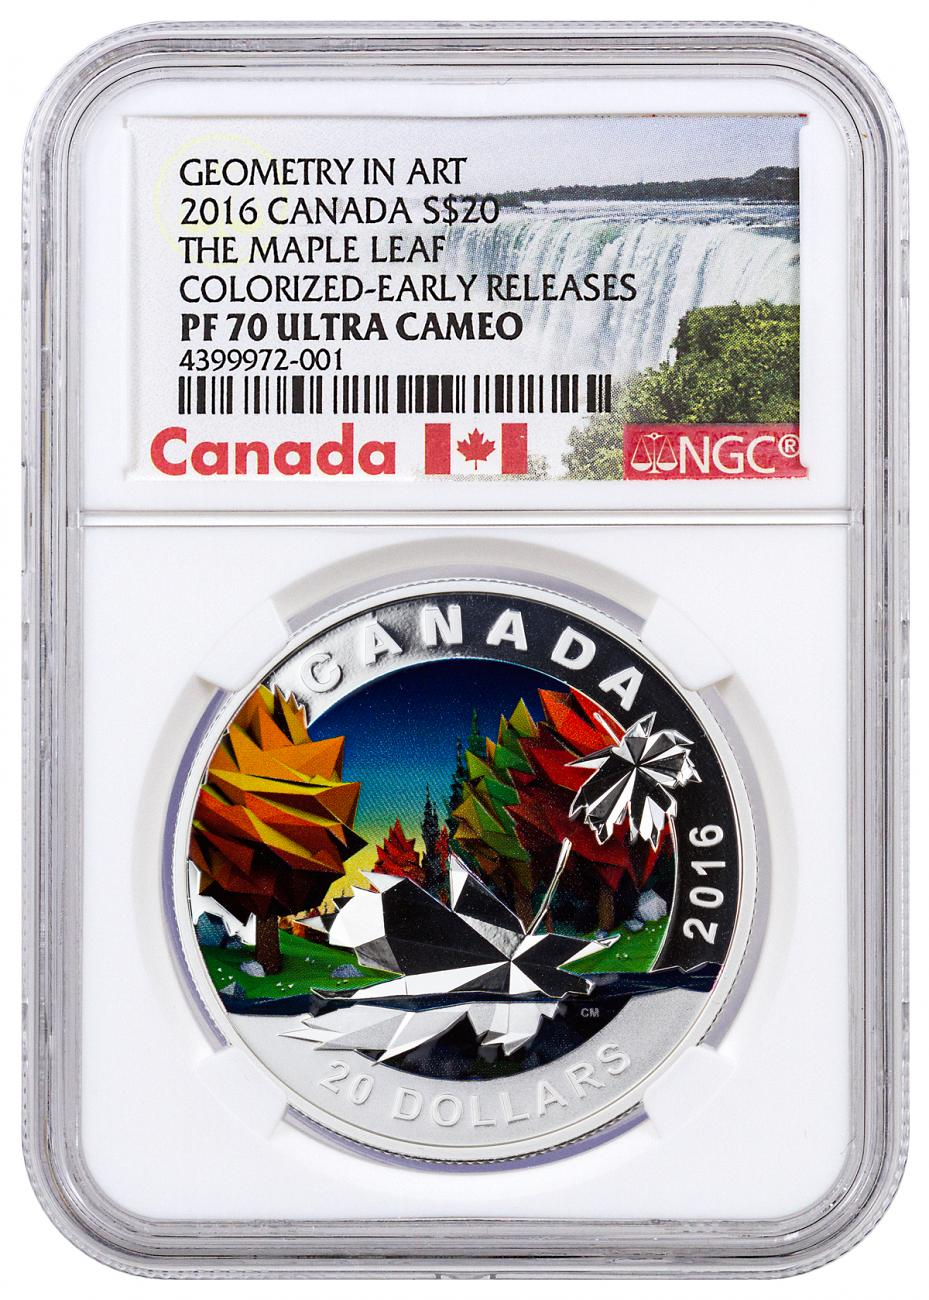 2016 Canada $20 1 oz. Colorized Proof Silver Geometry in Art - Maple Leaf - NGC PF70 UC Early Releases (Exclusive Canada Label)